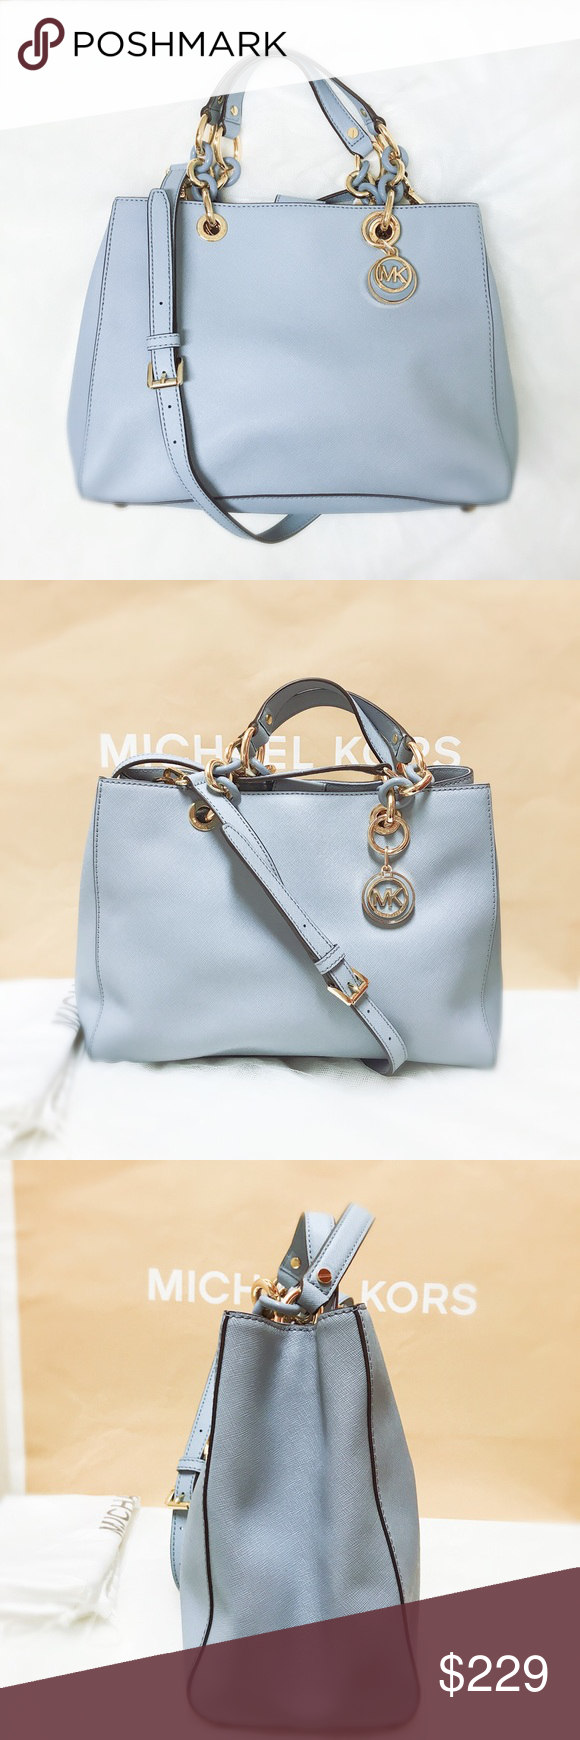 59725eb78df7 Michael kors cynthia medium leather satchel blue Authentic and brand new  with tag. Dust bag and MK gift box or bag are included.